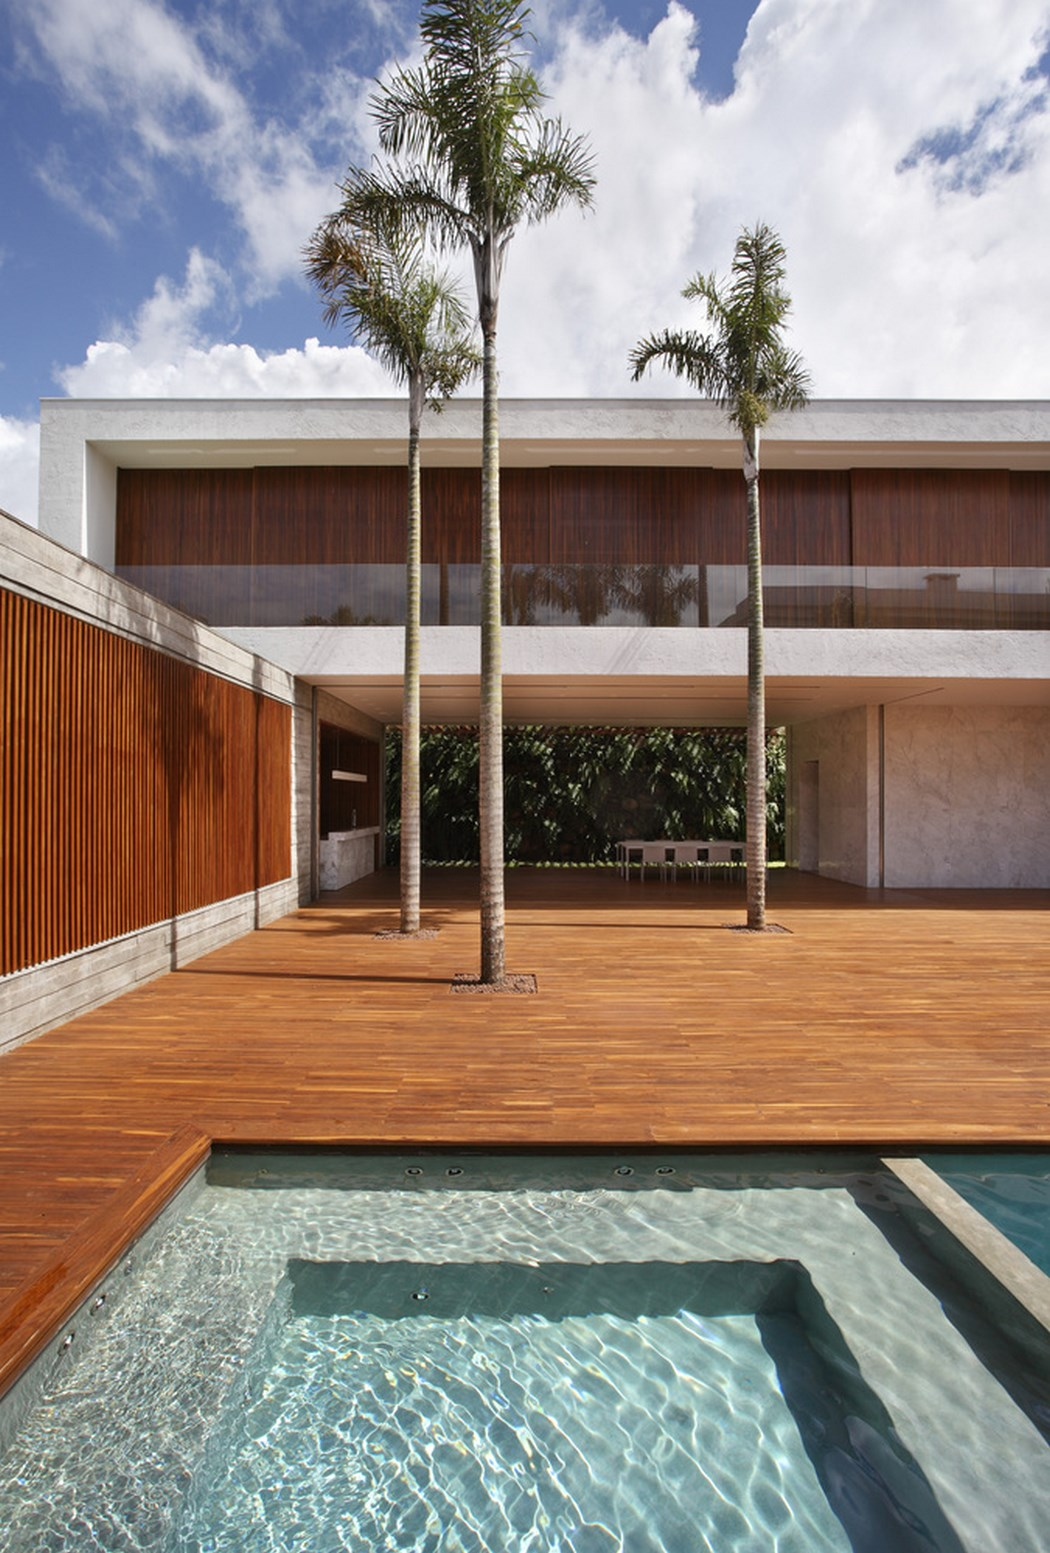 AN-house-architect-guilherme-torres-6